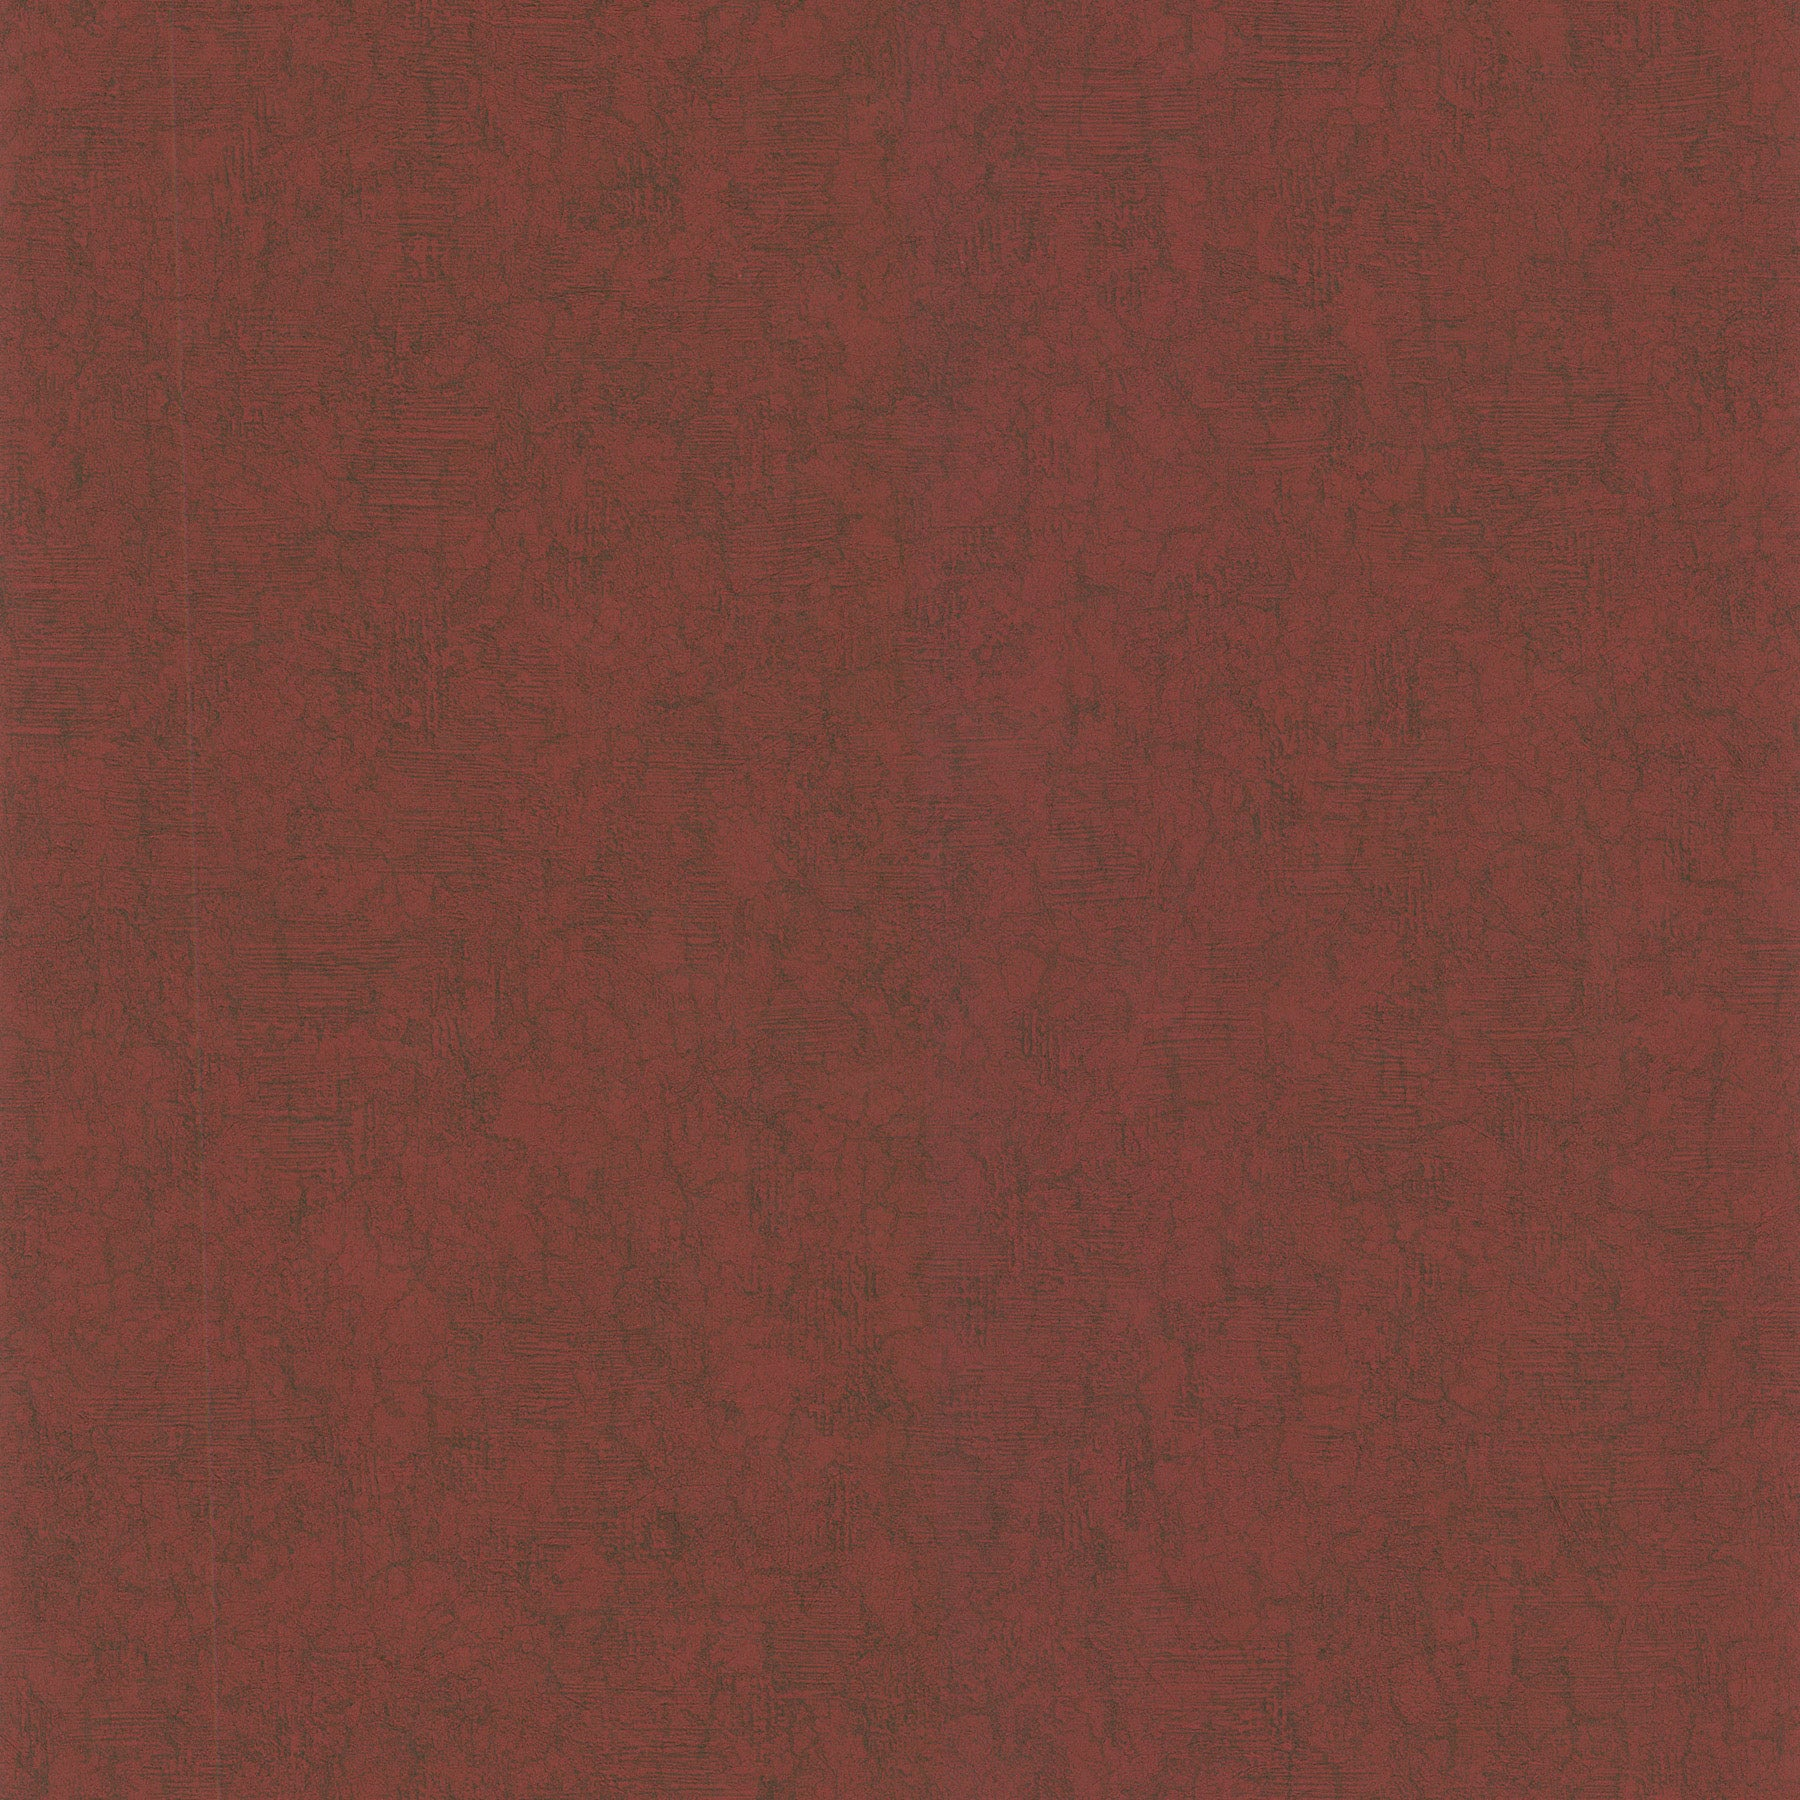 Maroon Textured Wallpaper Privacy Policy